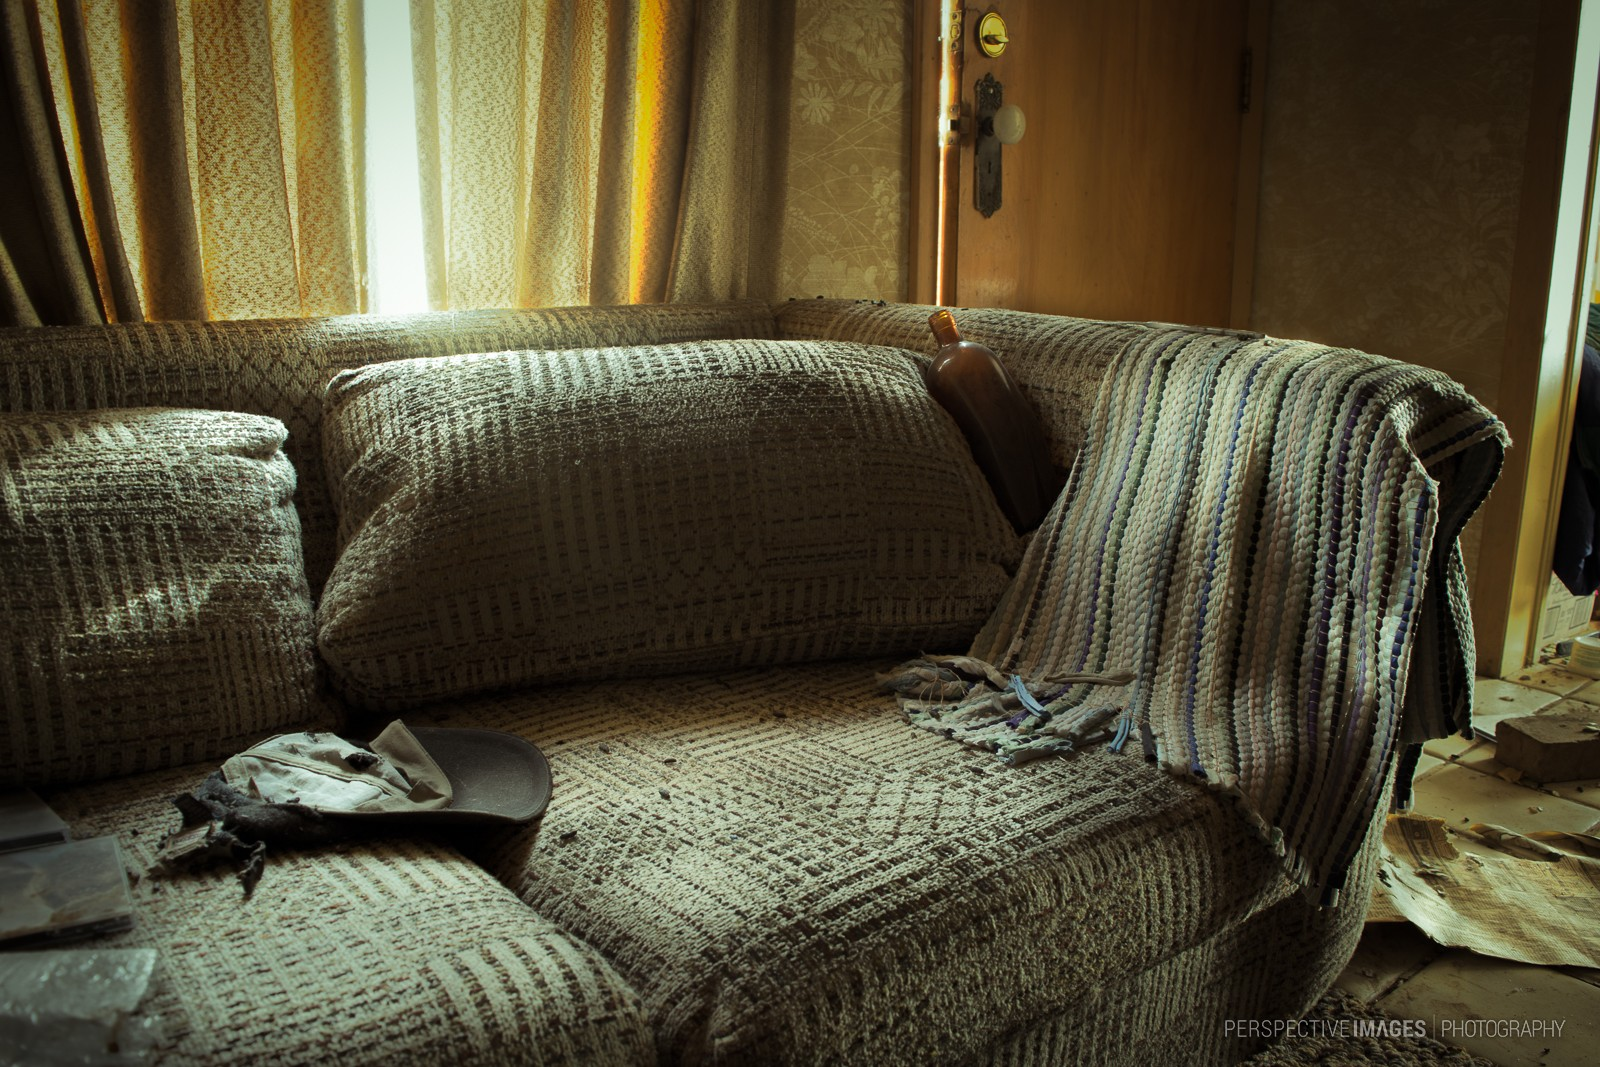 Sit Down, Relax Awhile - An empty bottle propped in the corner of a sofa at an abandoned house.